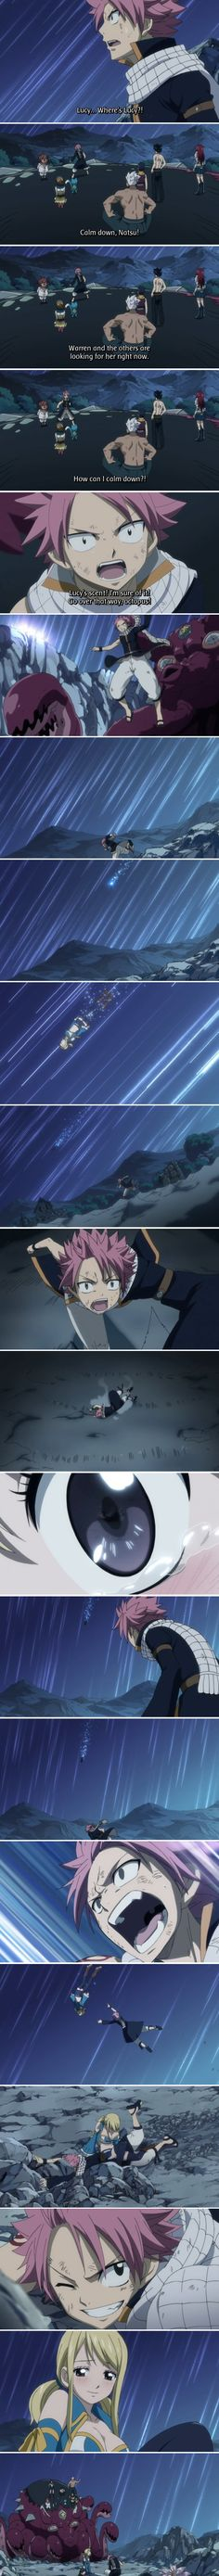 NaLu!!!! This actually was the moment I became a NaLu shipper.....I was a little late.....